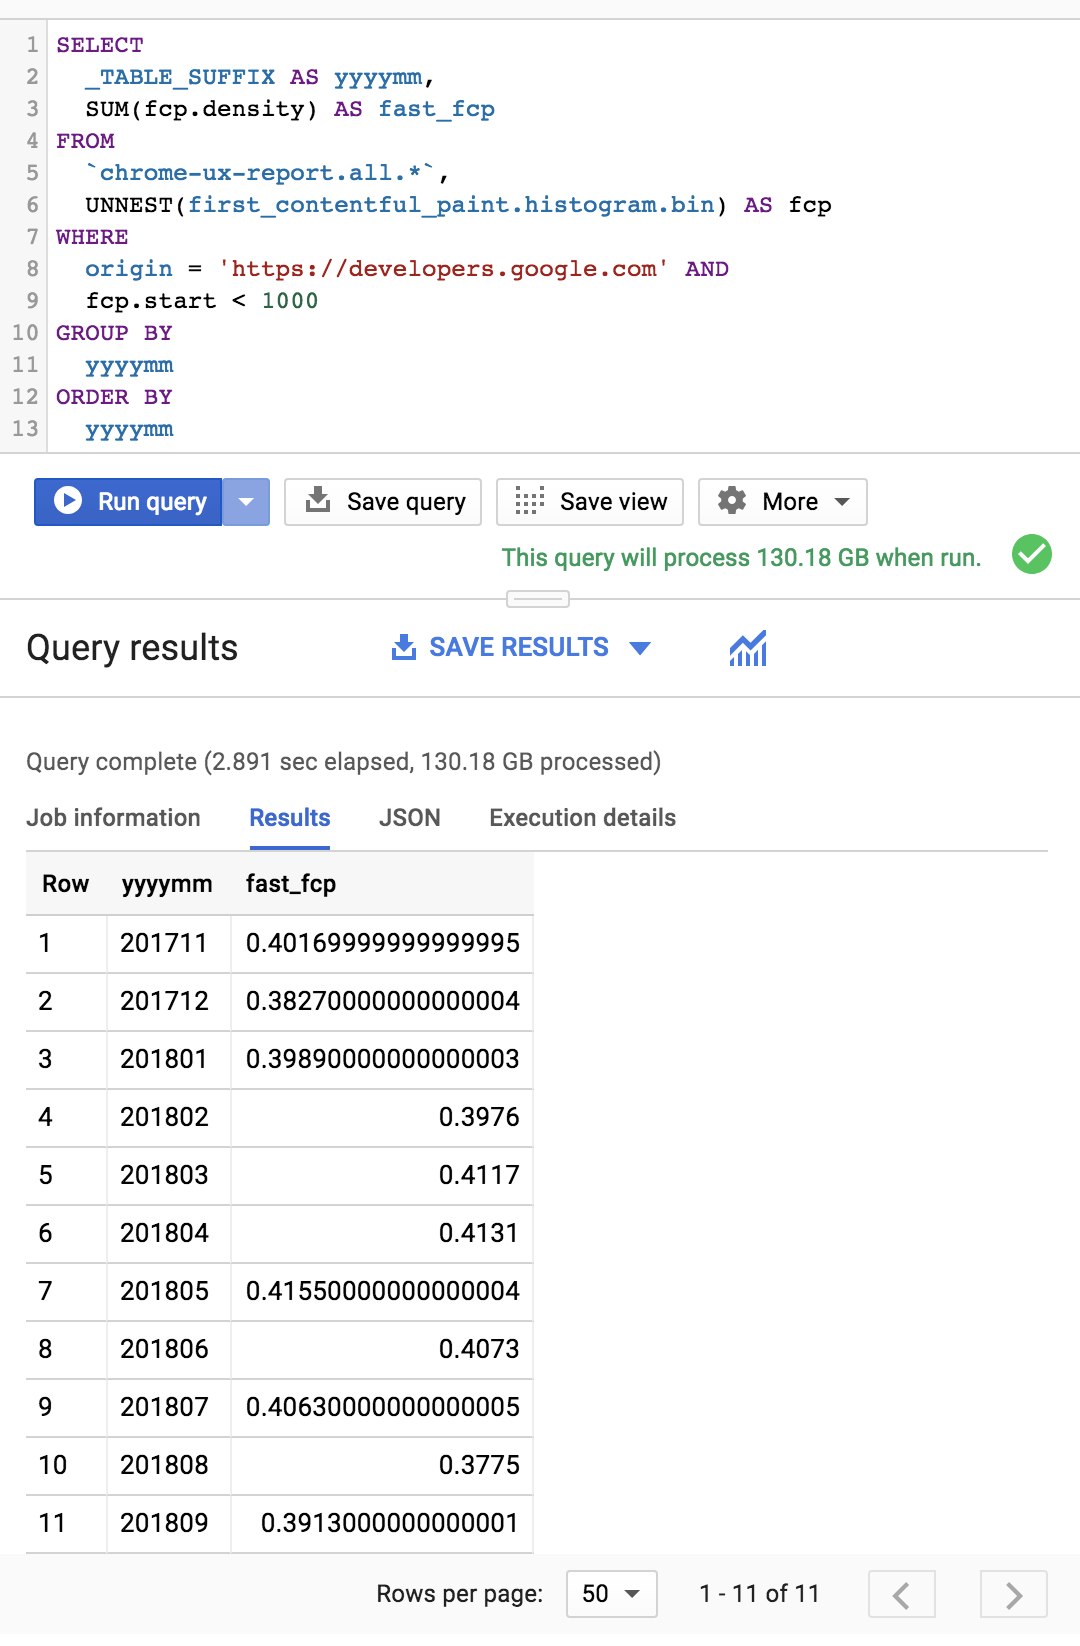 Querying a timeseries of CrUX FCP on BigQuery